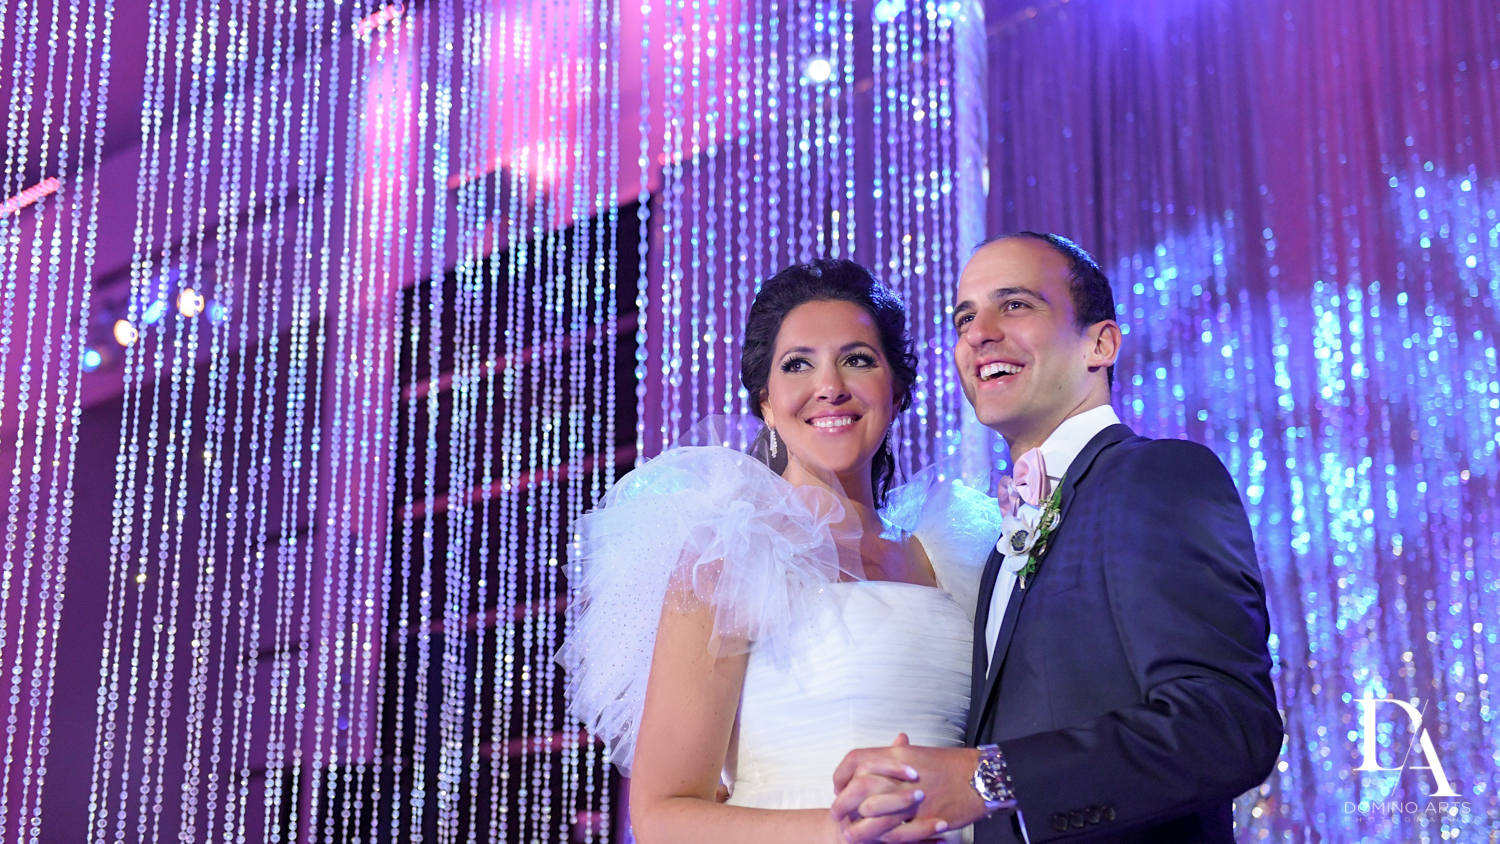 bride and groom portrait at Fairy-Tale Wedding at BNai Torah Boca Raton by Domino Arts Photography